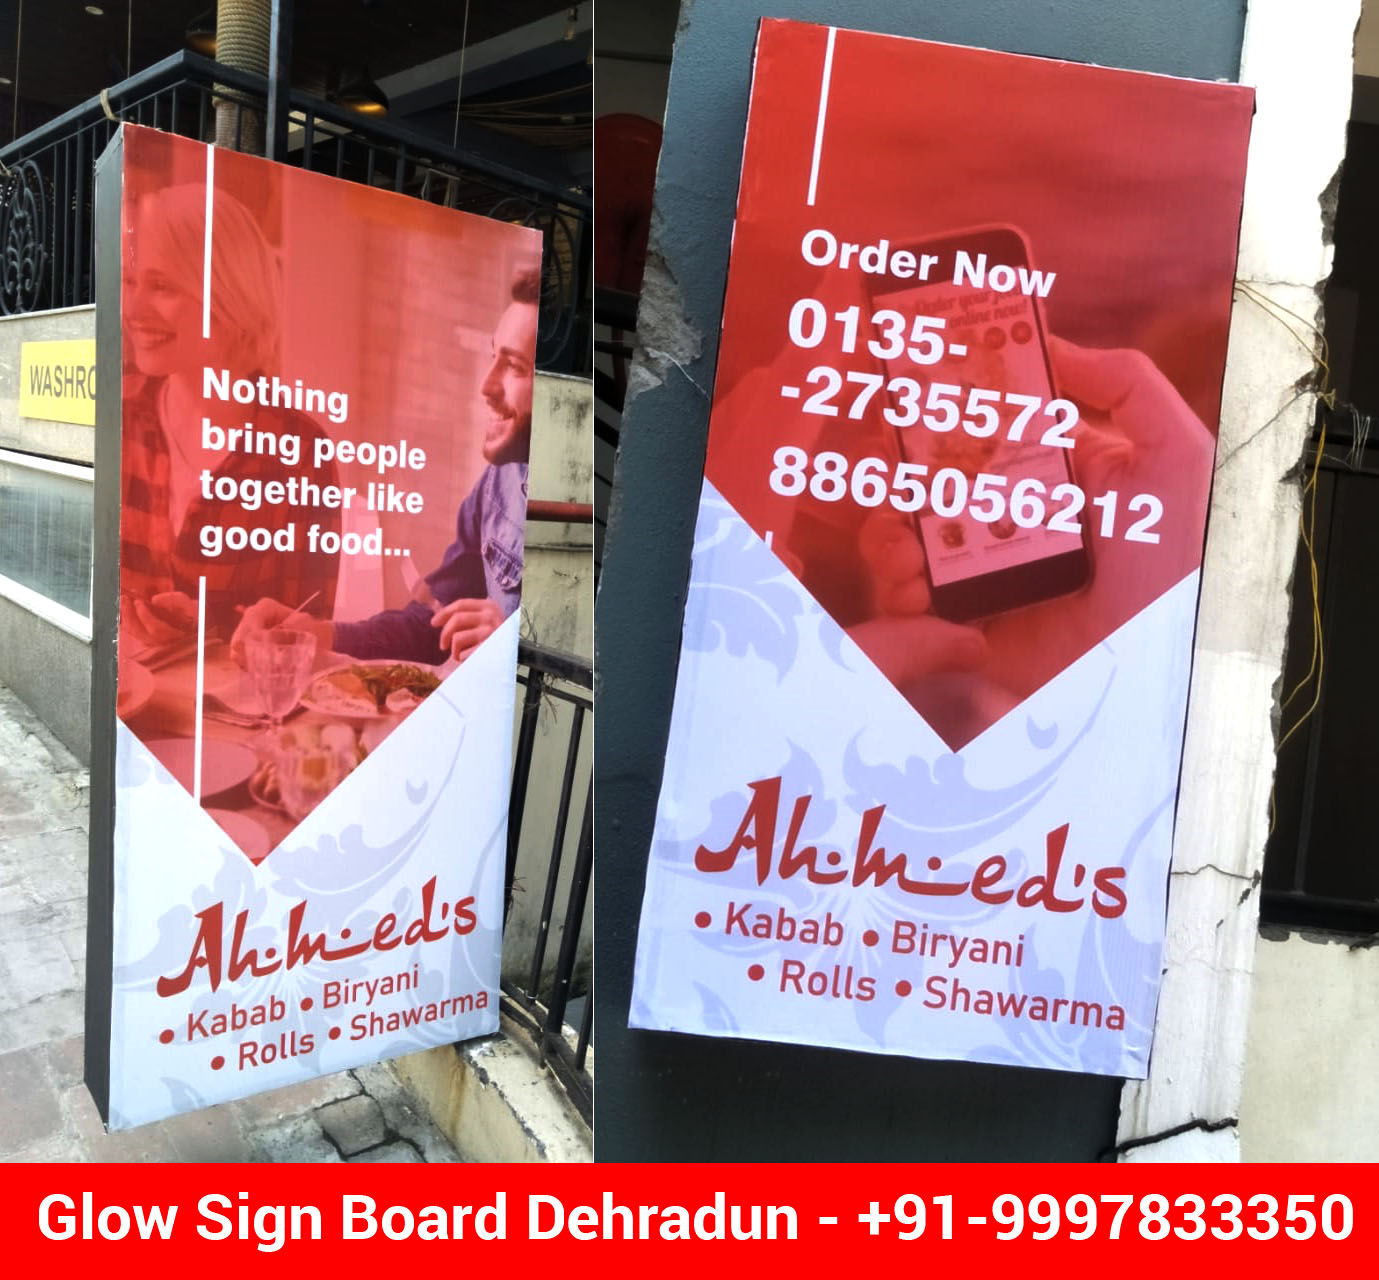 LED Glow Sign Board For Dehradun Based Restaurant